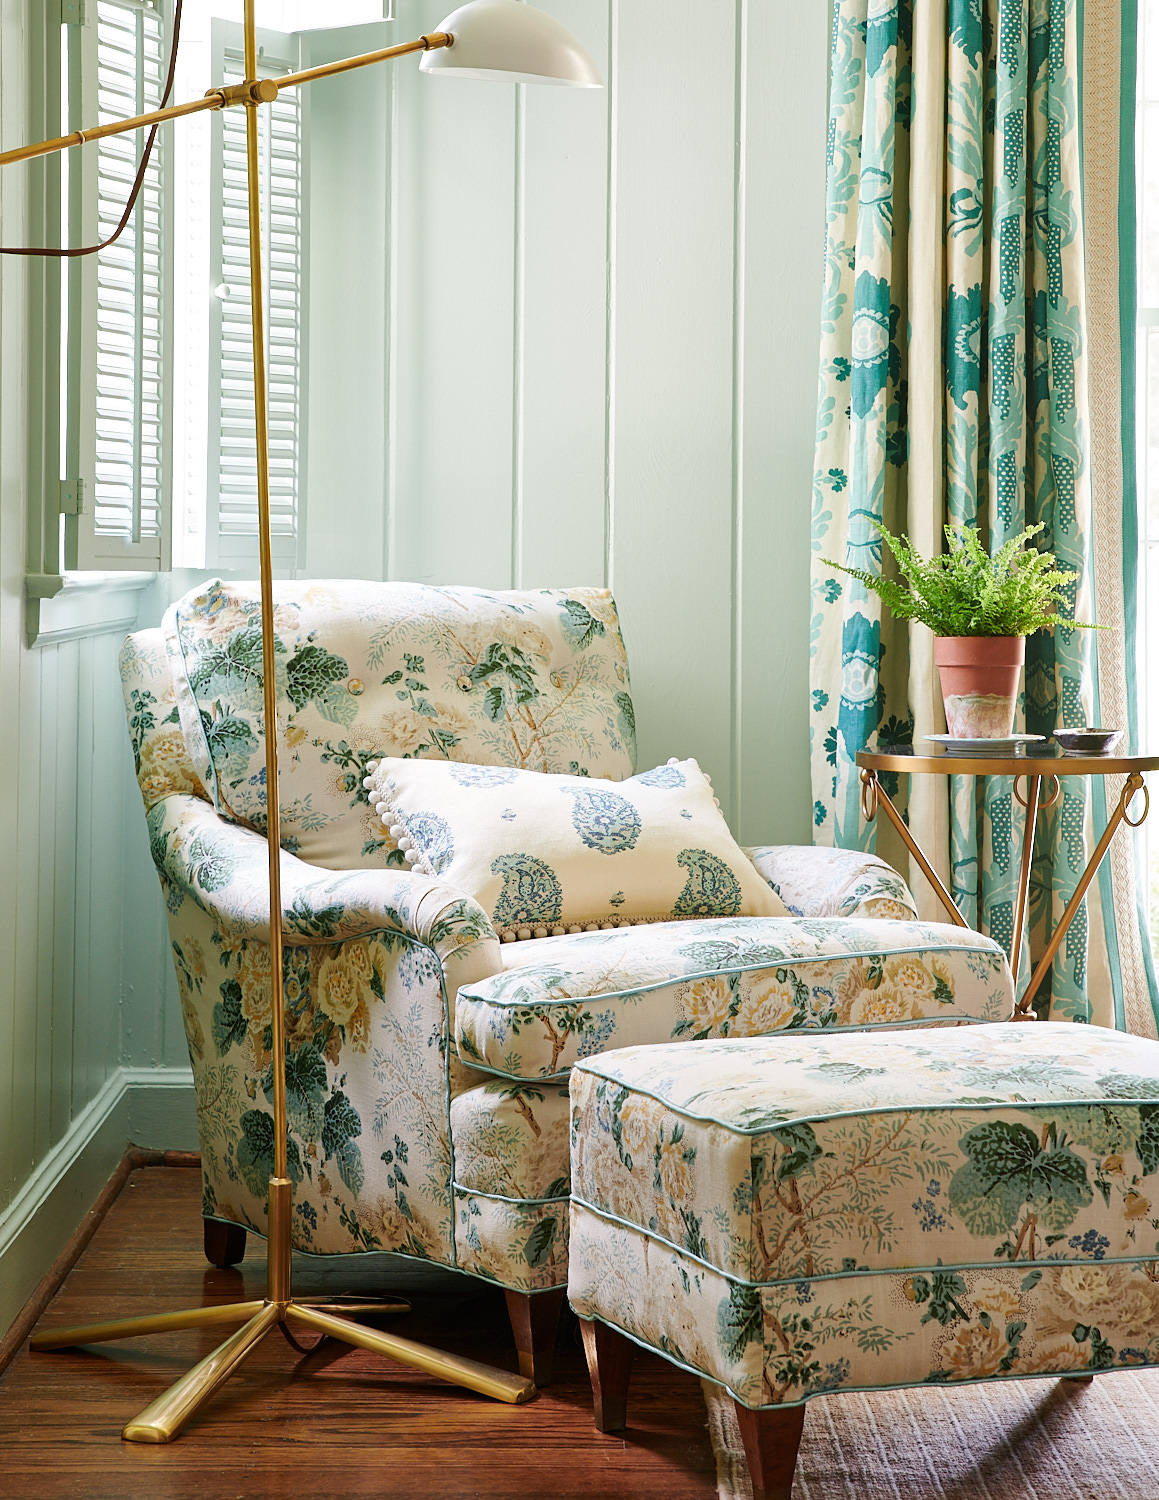 Upholstered floral chair with kidney pillow and tassels, and matching ottoman